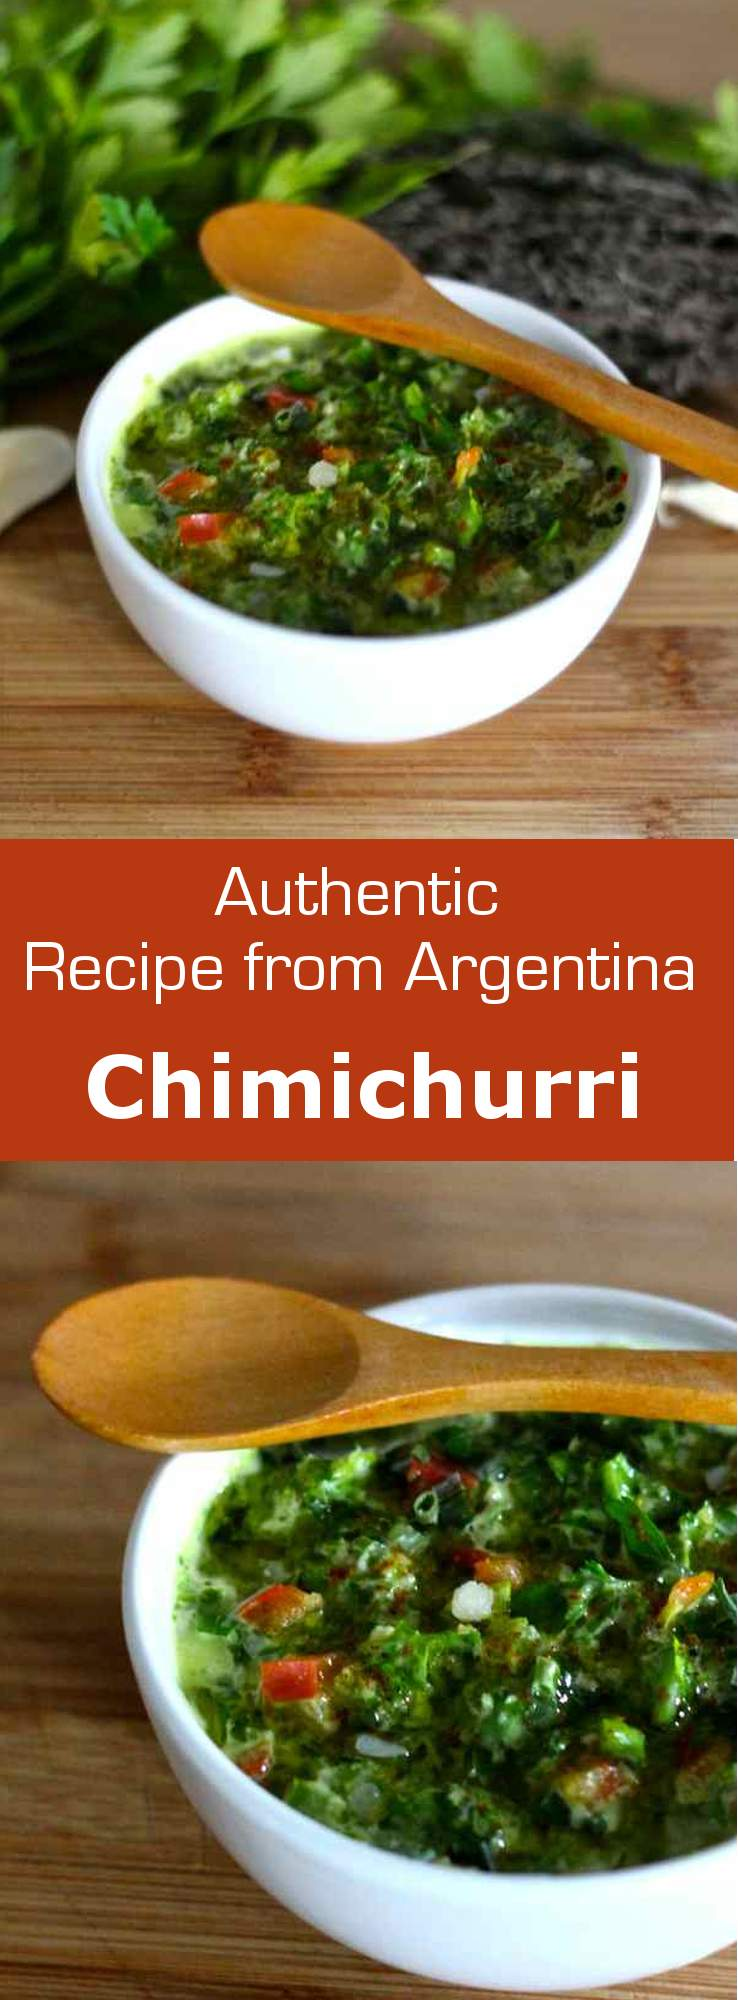 Chimichurri sauce is a classic Argentinian dressing that is typically used on grilled meats. #Argentina #sauce #dressing #condiment #vegetarian #vegan #glutenfree